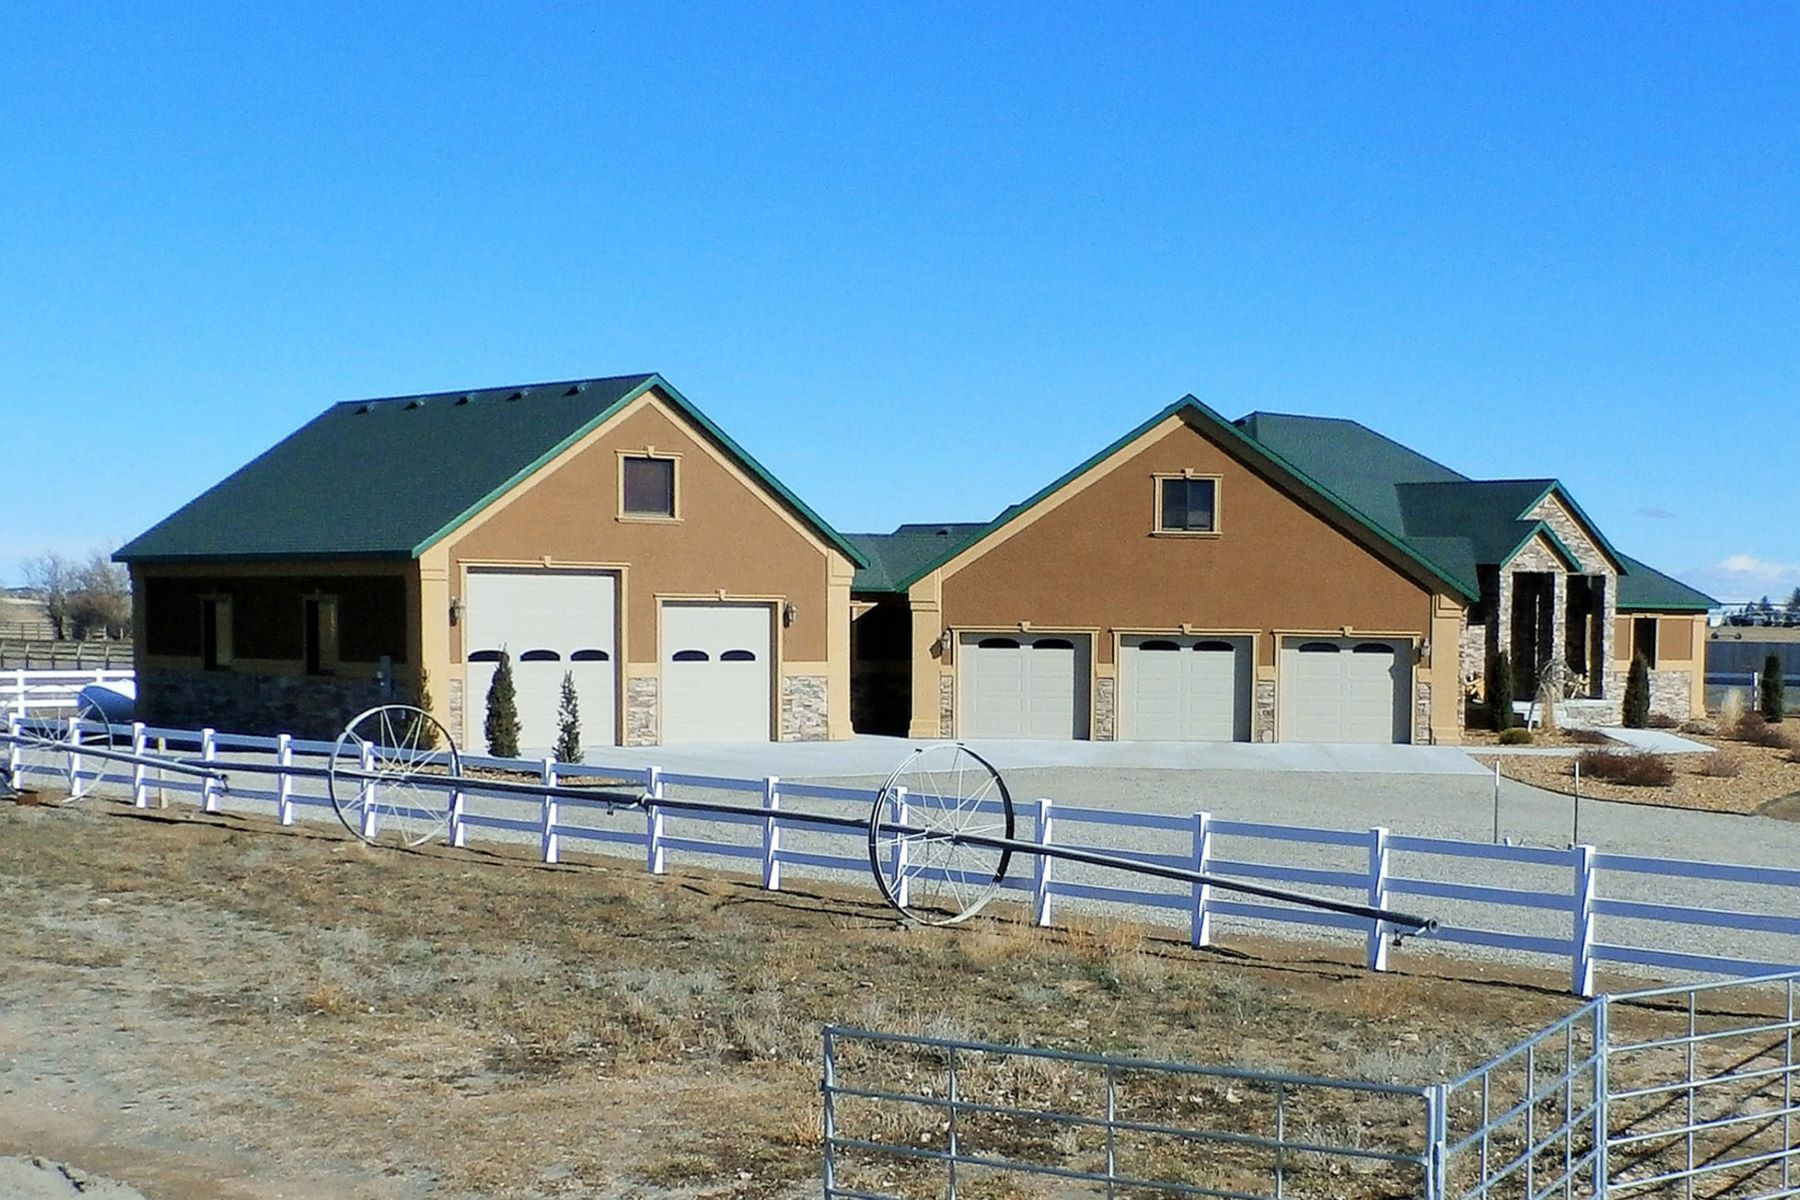 Ferme / Ranch / Plantation pour l à vendre à Indoor Riding Arena and Two Custom Homes 258, 256 and 262 West 250 North, Blackfoot, Idaho, 83221 Jackson Hole, États-Unis